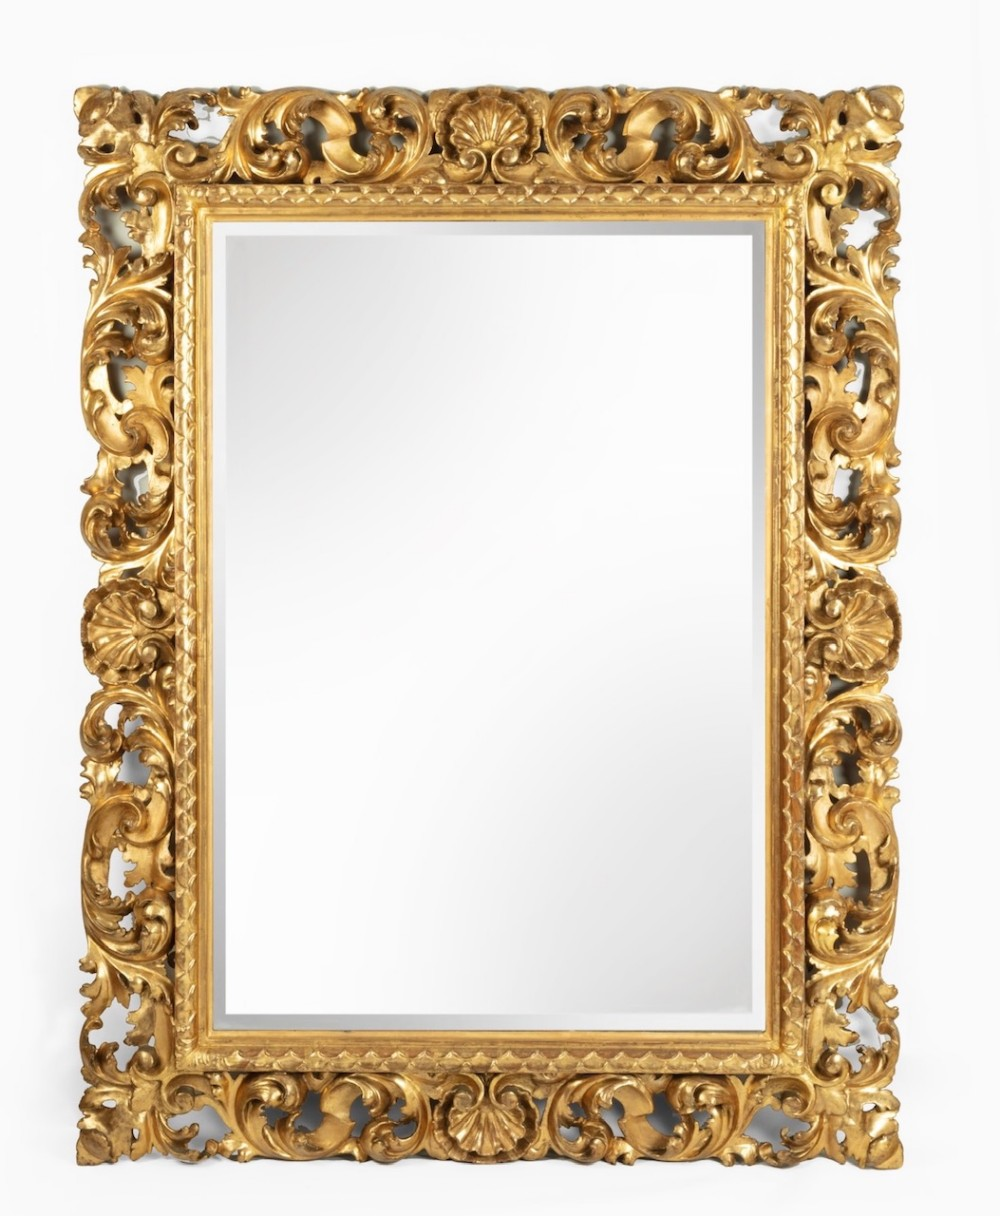 an unusually large 19th century italian carved wood gilded mirror